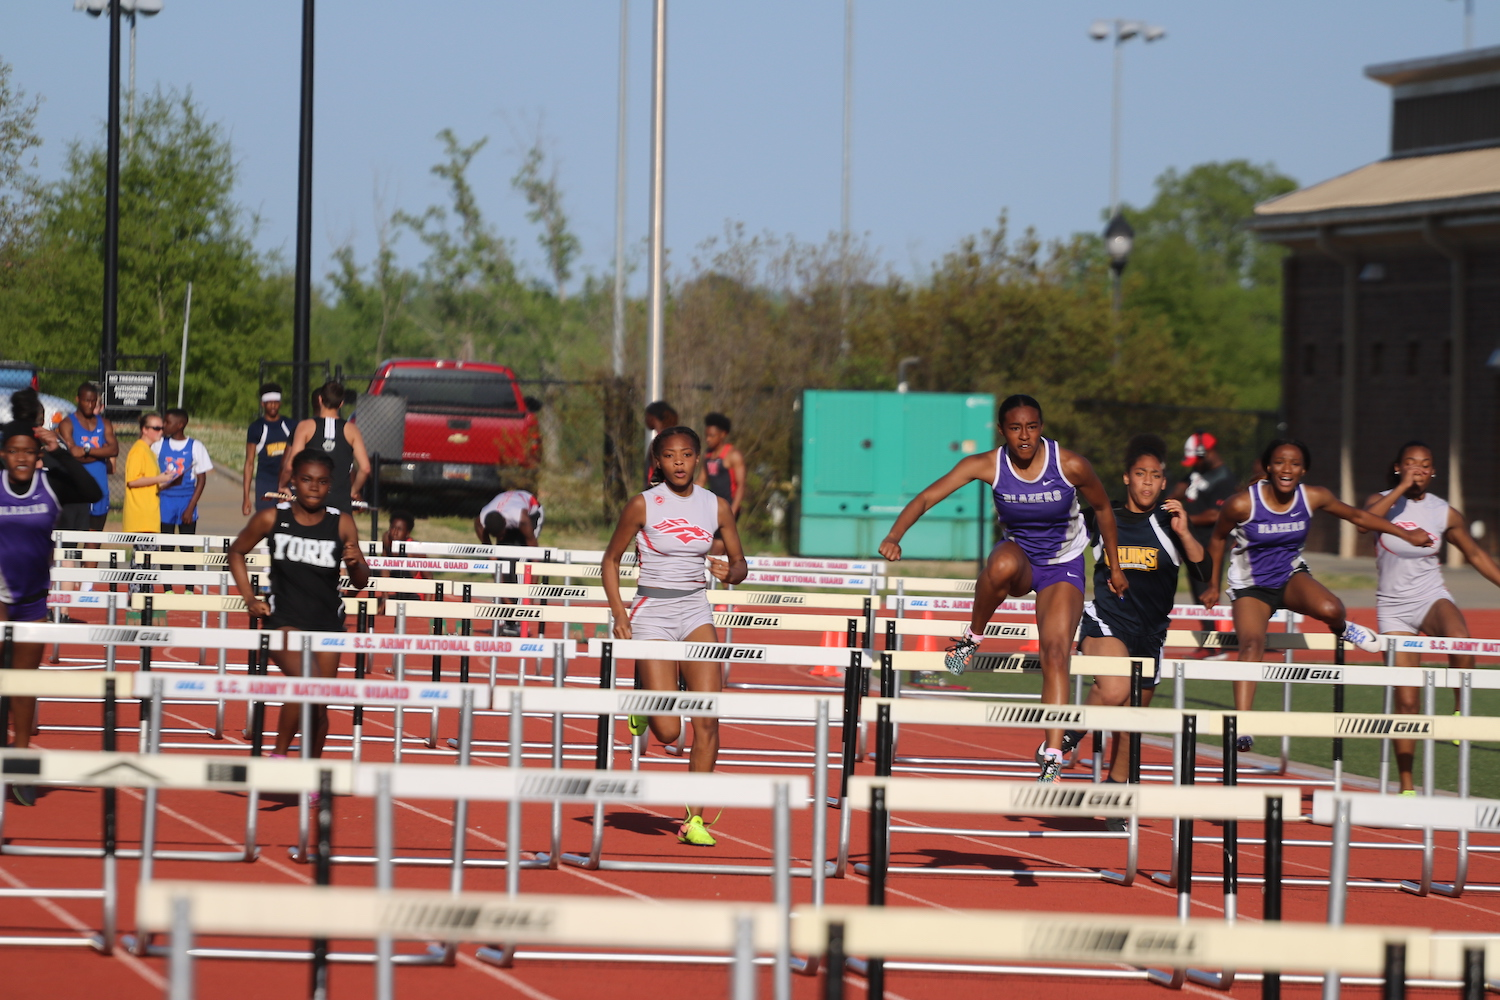 2018 Region Meet, May 18 at York High School